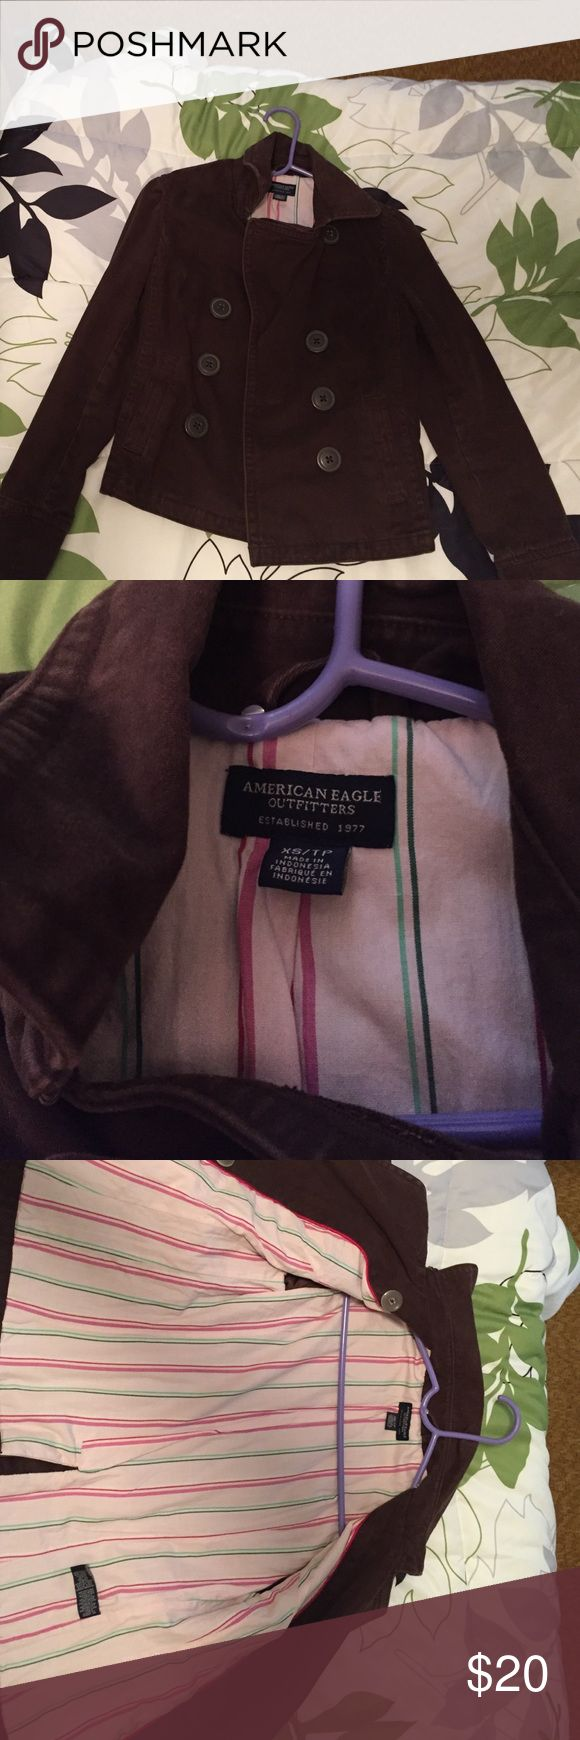 NWOT American Eagle Jacket. Cute American Eagle jacket. Worn once or twice. 100% cotton outside and inside. Offers welcome. American Eagle Outfitters Jackets & Coats Pea Coats